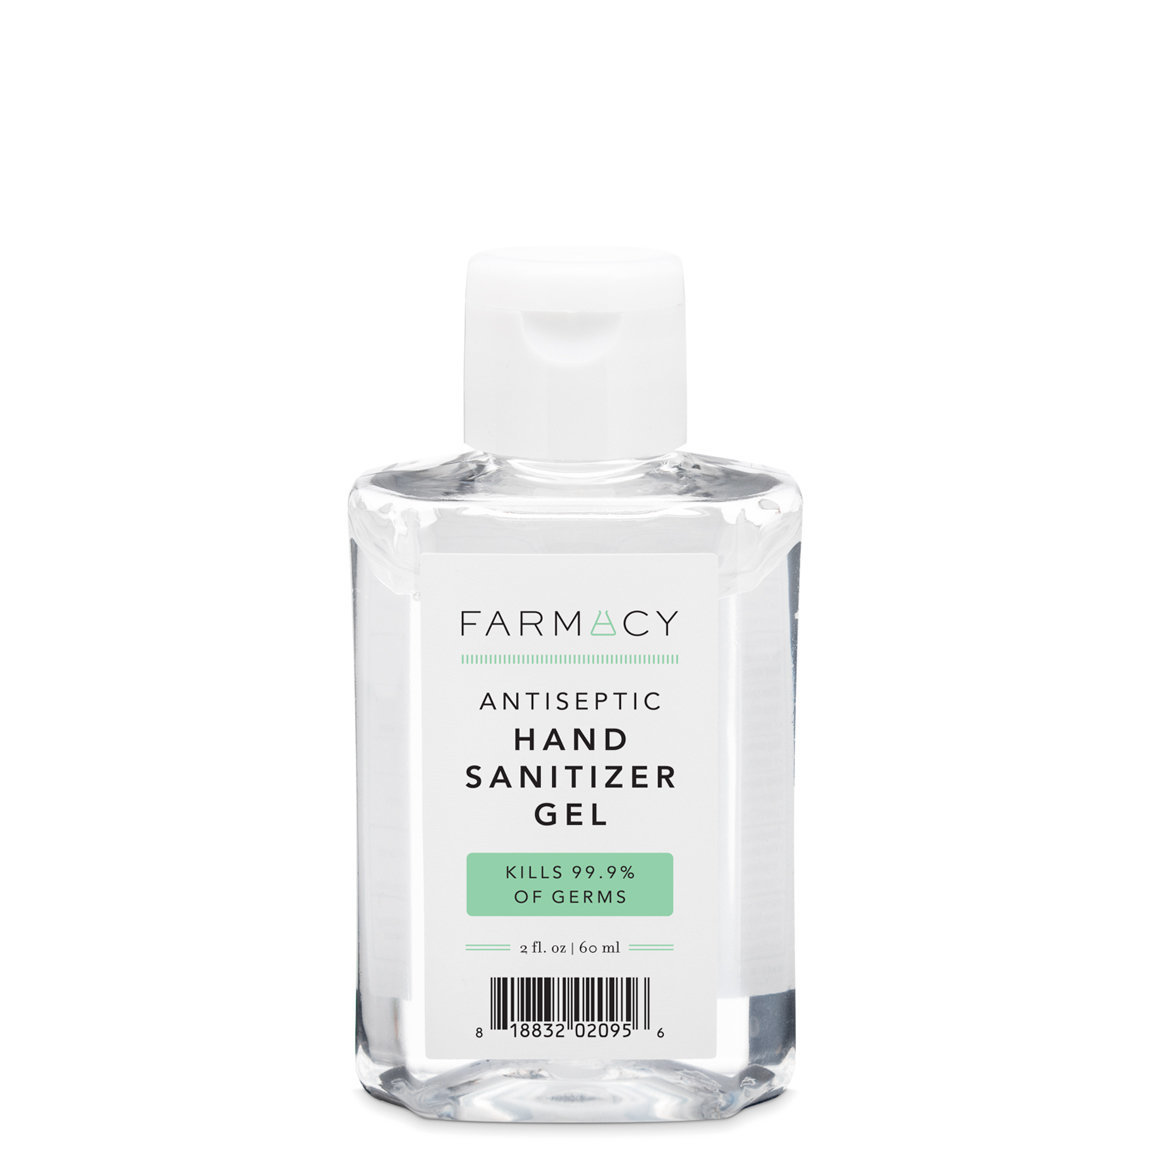 Farmacy Antiseptic Hand Sanitizer Gel alternative view 1 - product swatch.